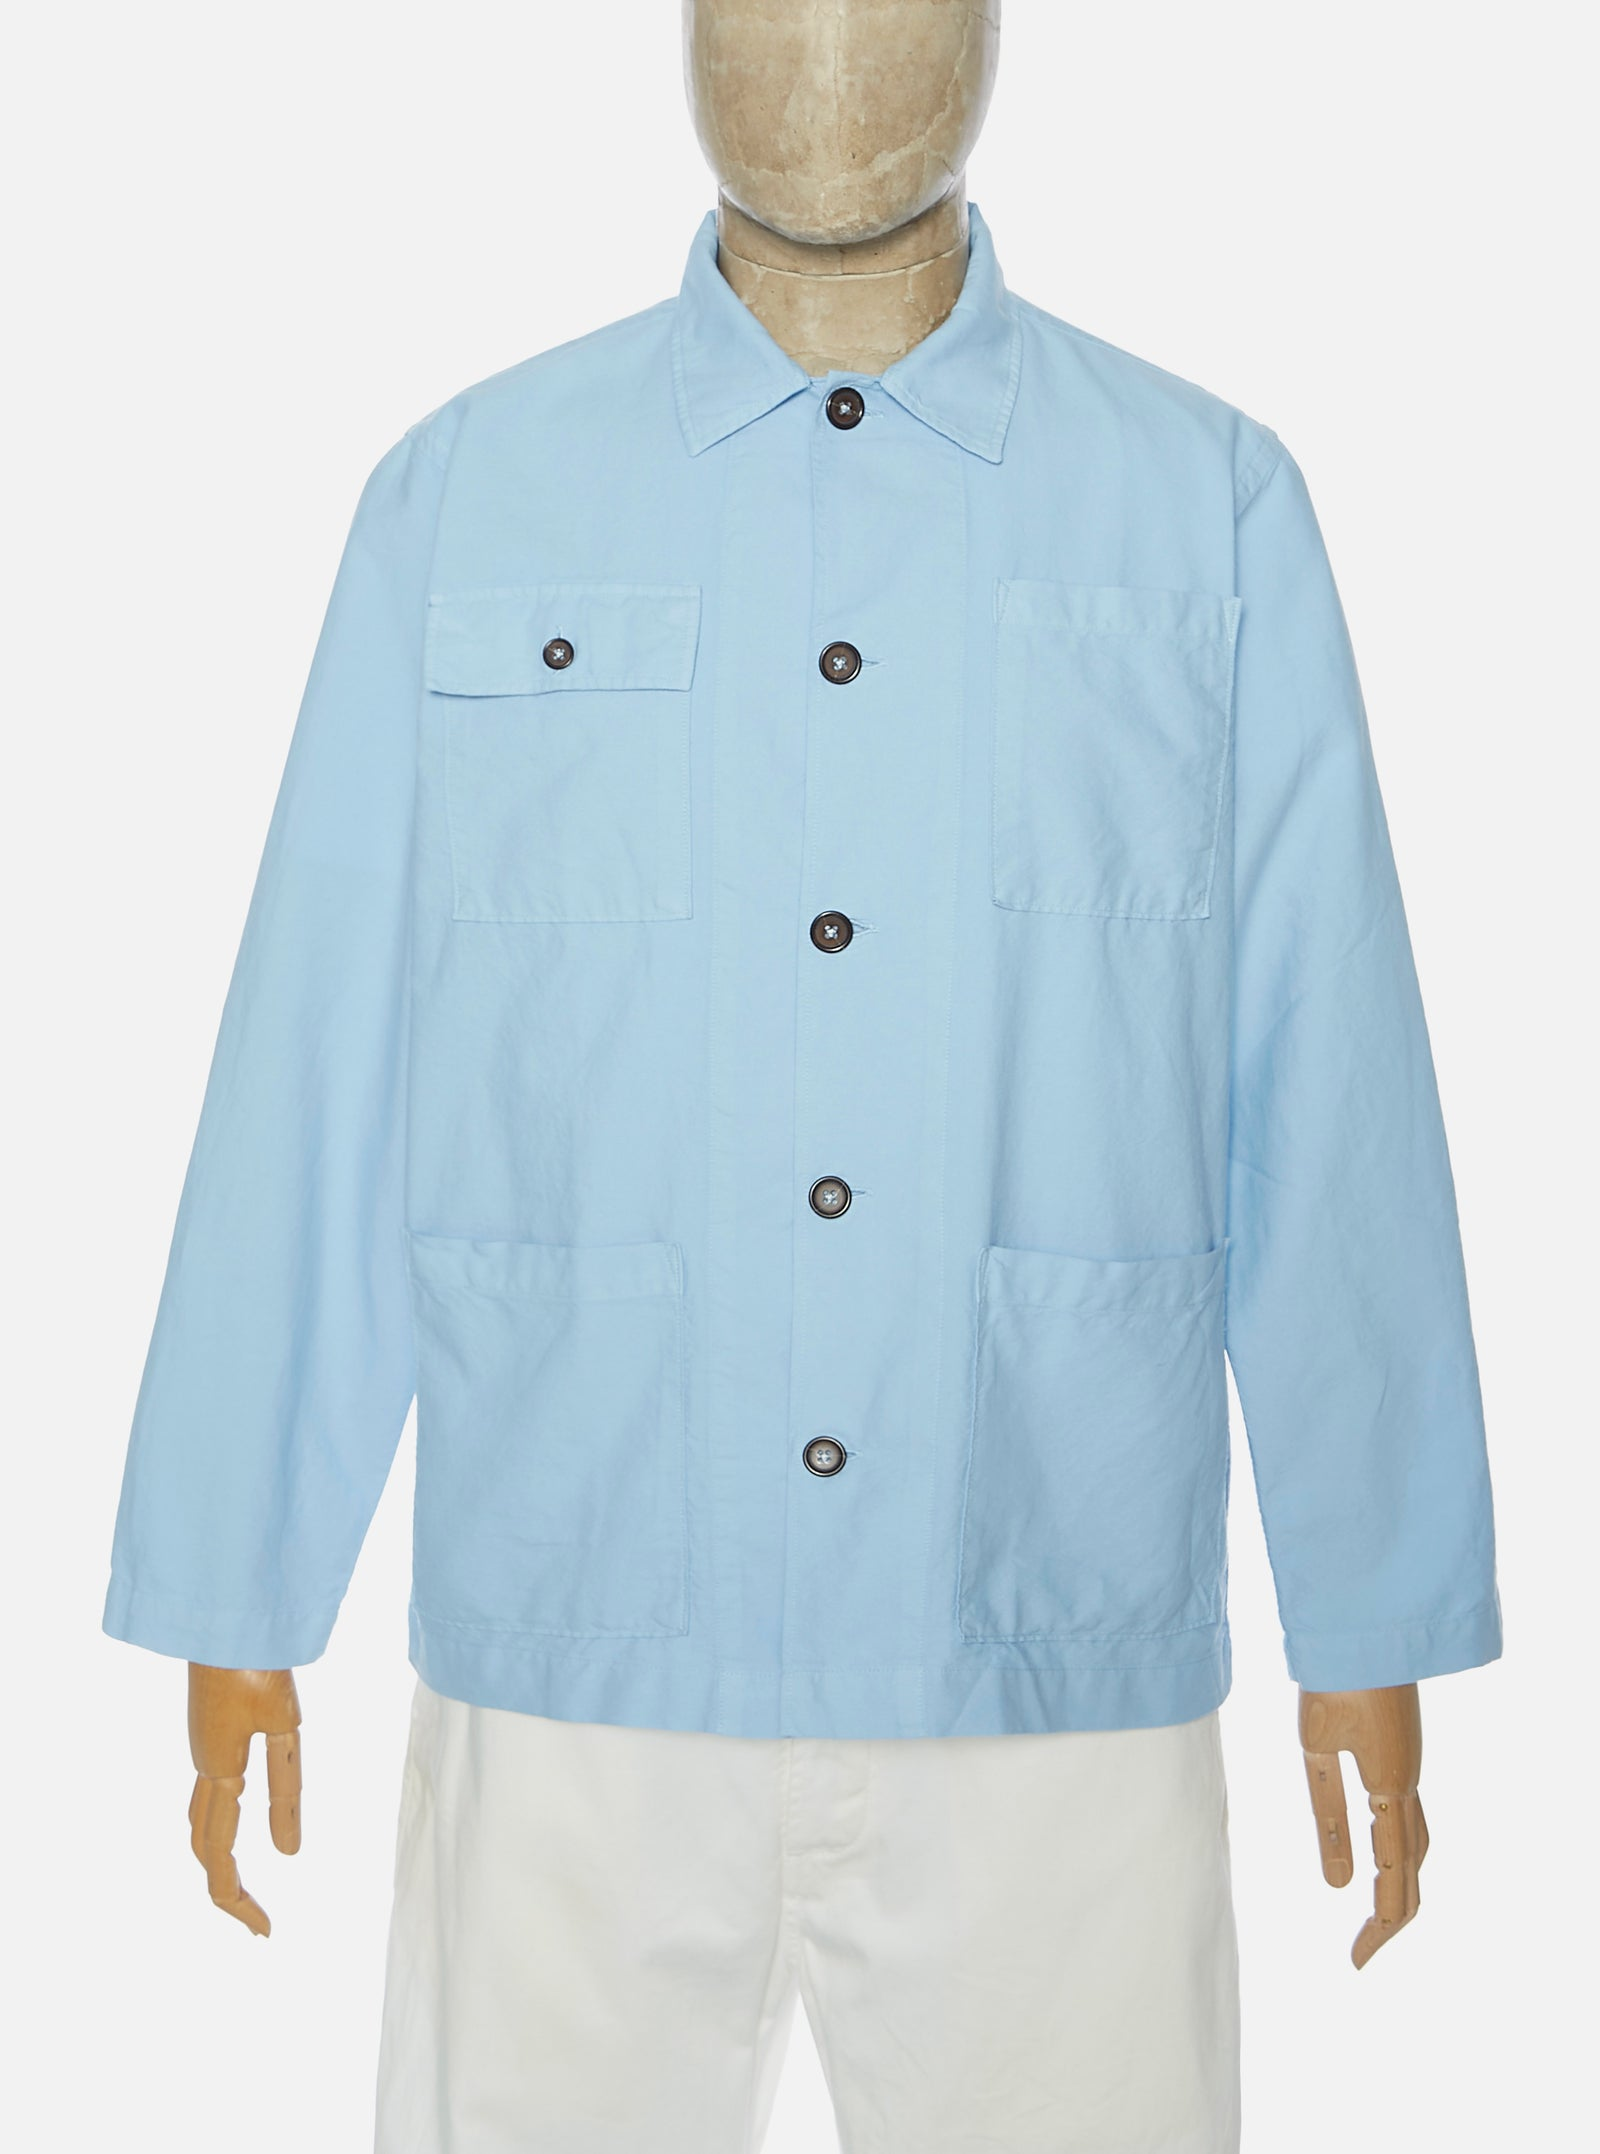 Universal Works Dockside Overshirt in Sky Blue Oxford